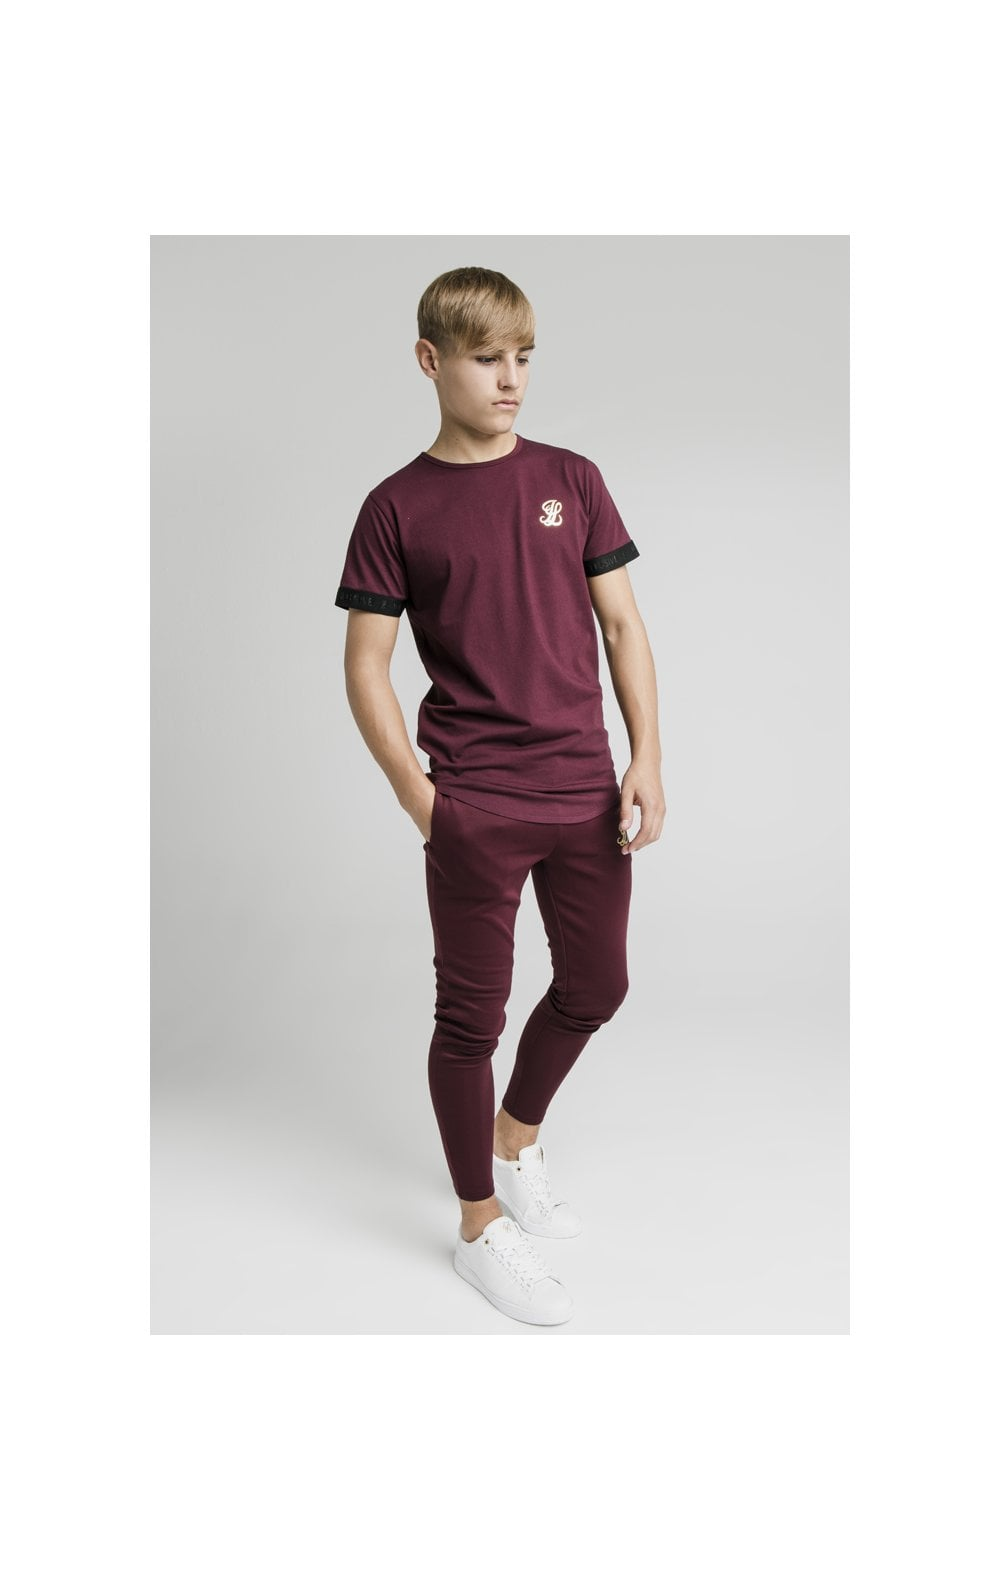 Illusive London Agility Track Pants - Burgundy (5)